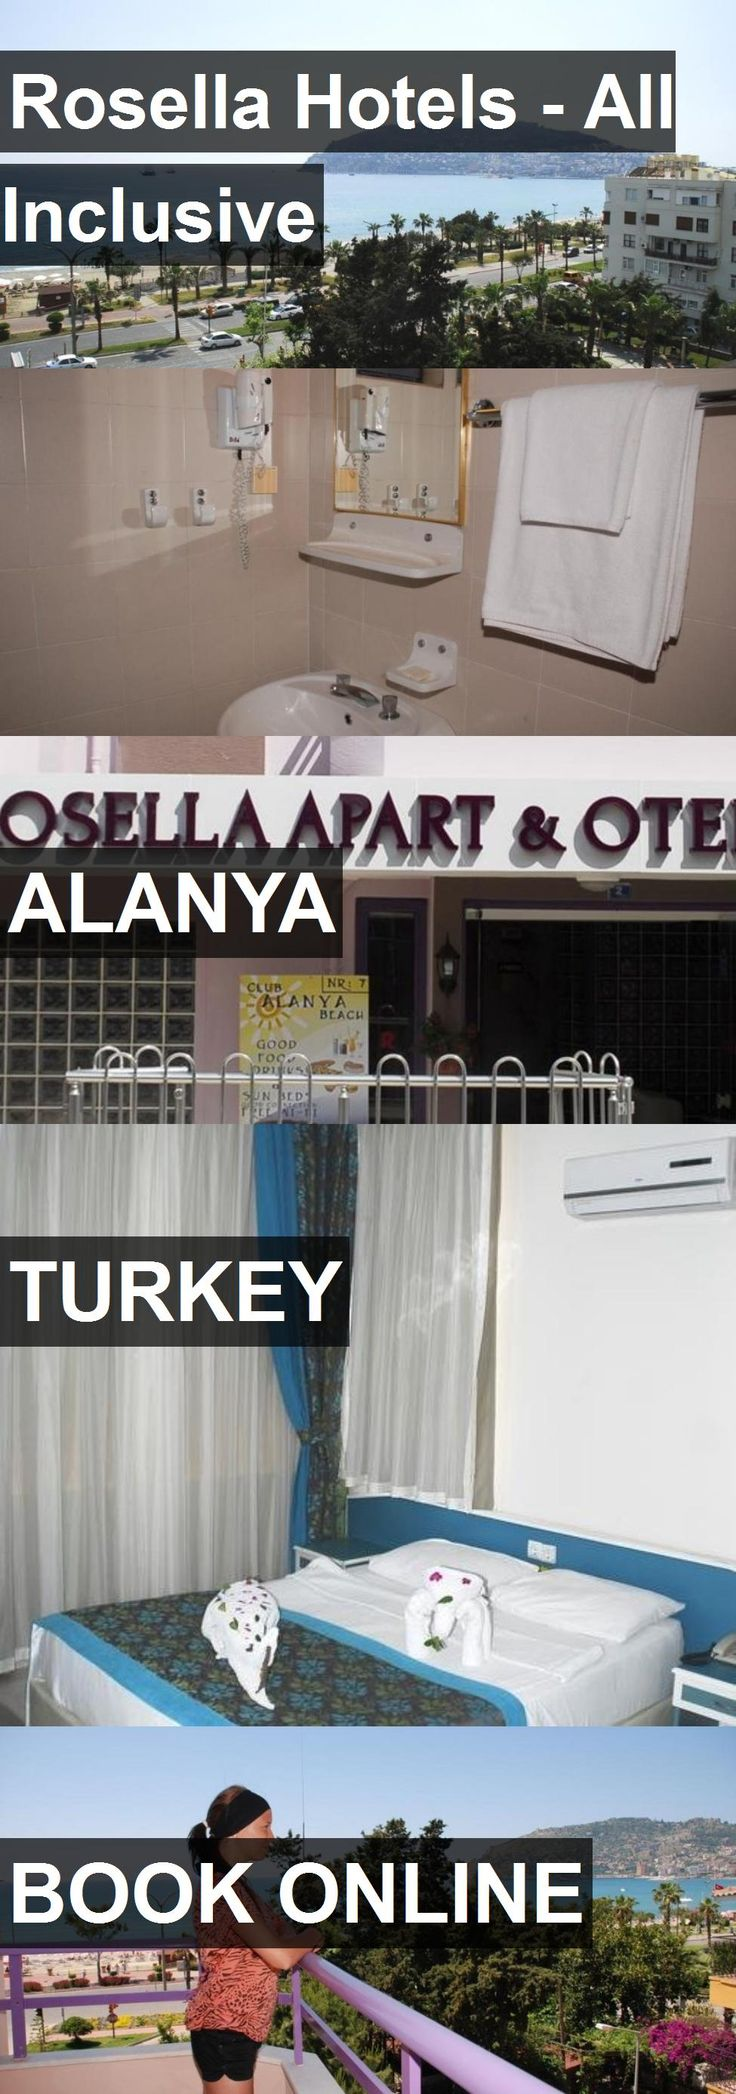 Hotel Rosella Hotels - All Inclusive in Alanya, Turkey. For more information, photos, reviews and best prices please follow the link. #Turkey #Alanya #hotel #travel #vacation